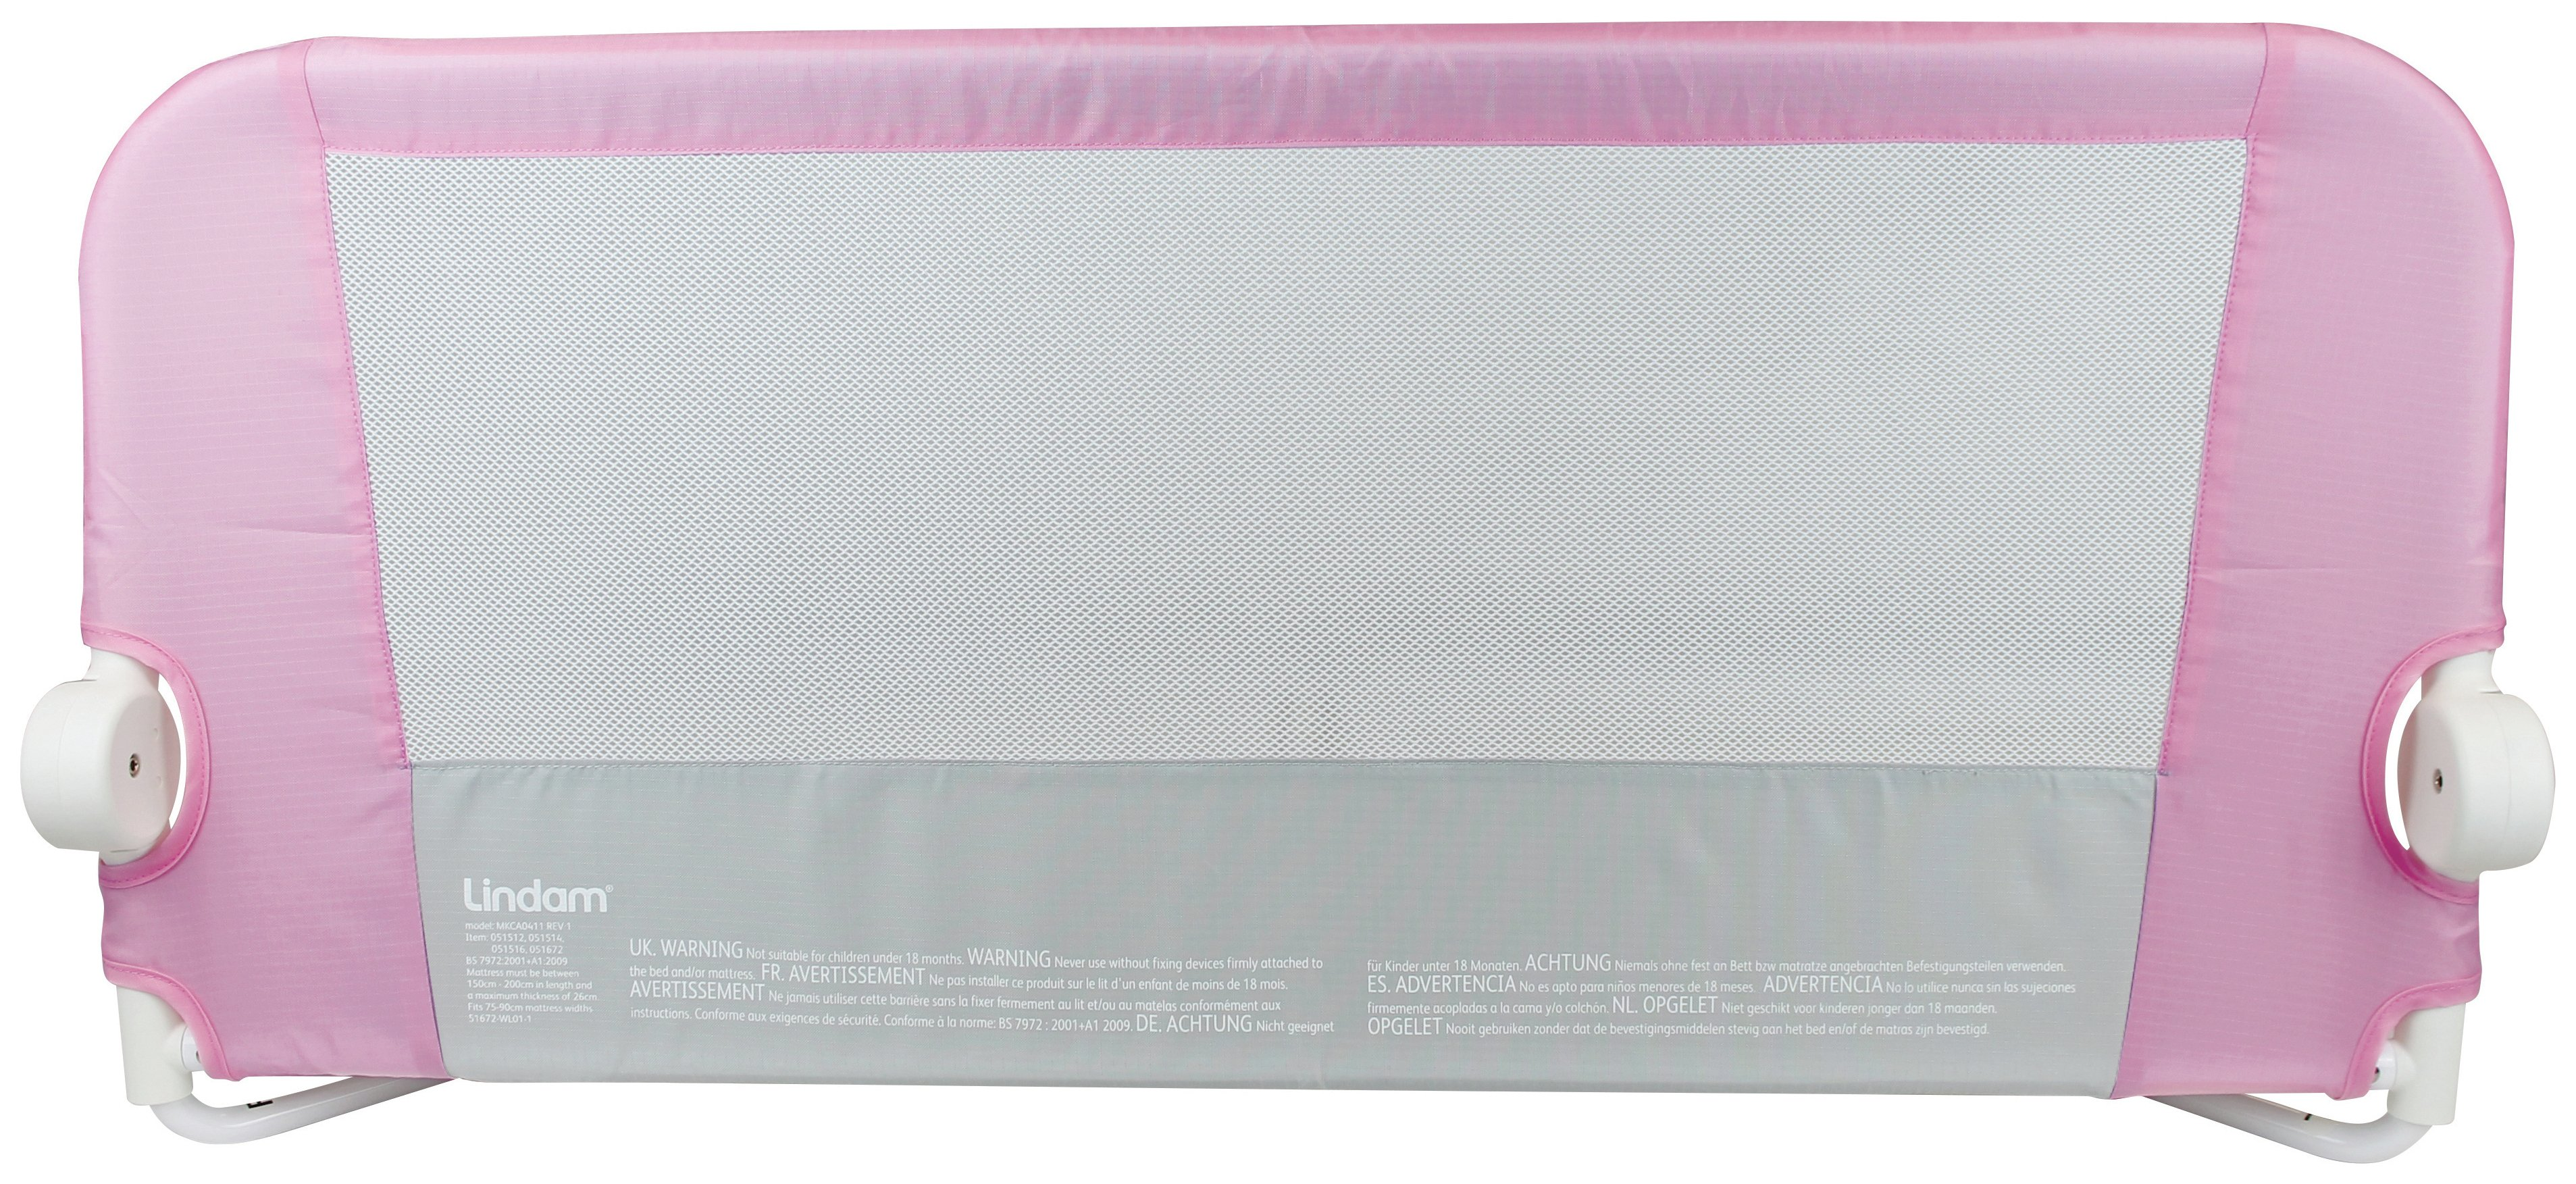 Image of Lindam Easy Fit Bed Guard - Pink.